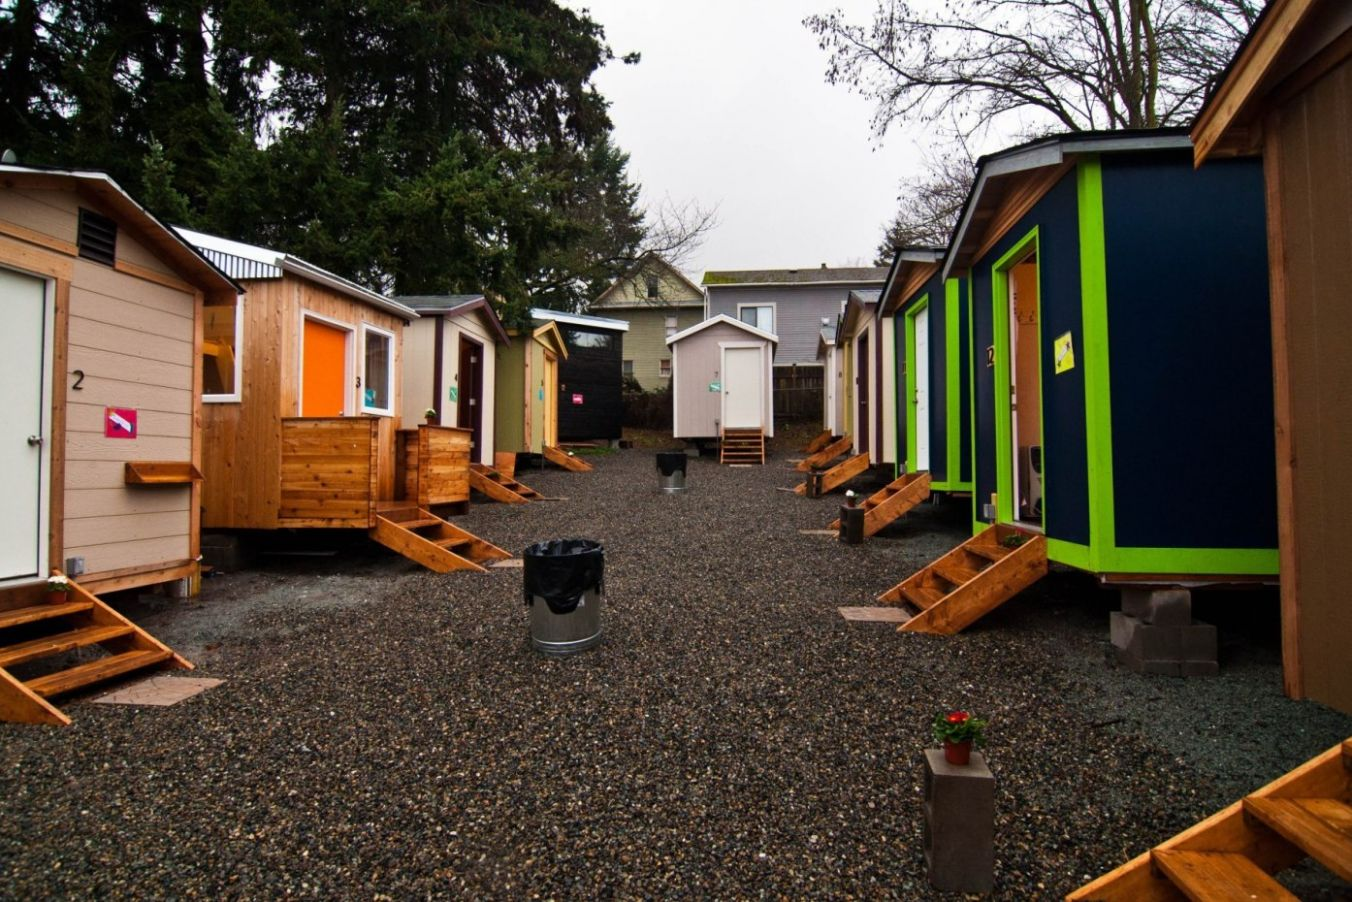 Seattle will shutter tiny house village after resident lockout ...